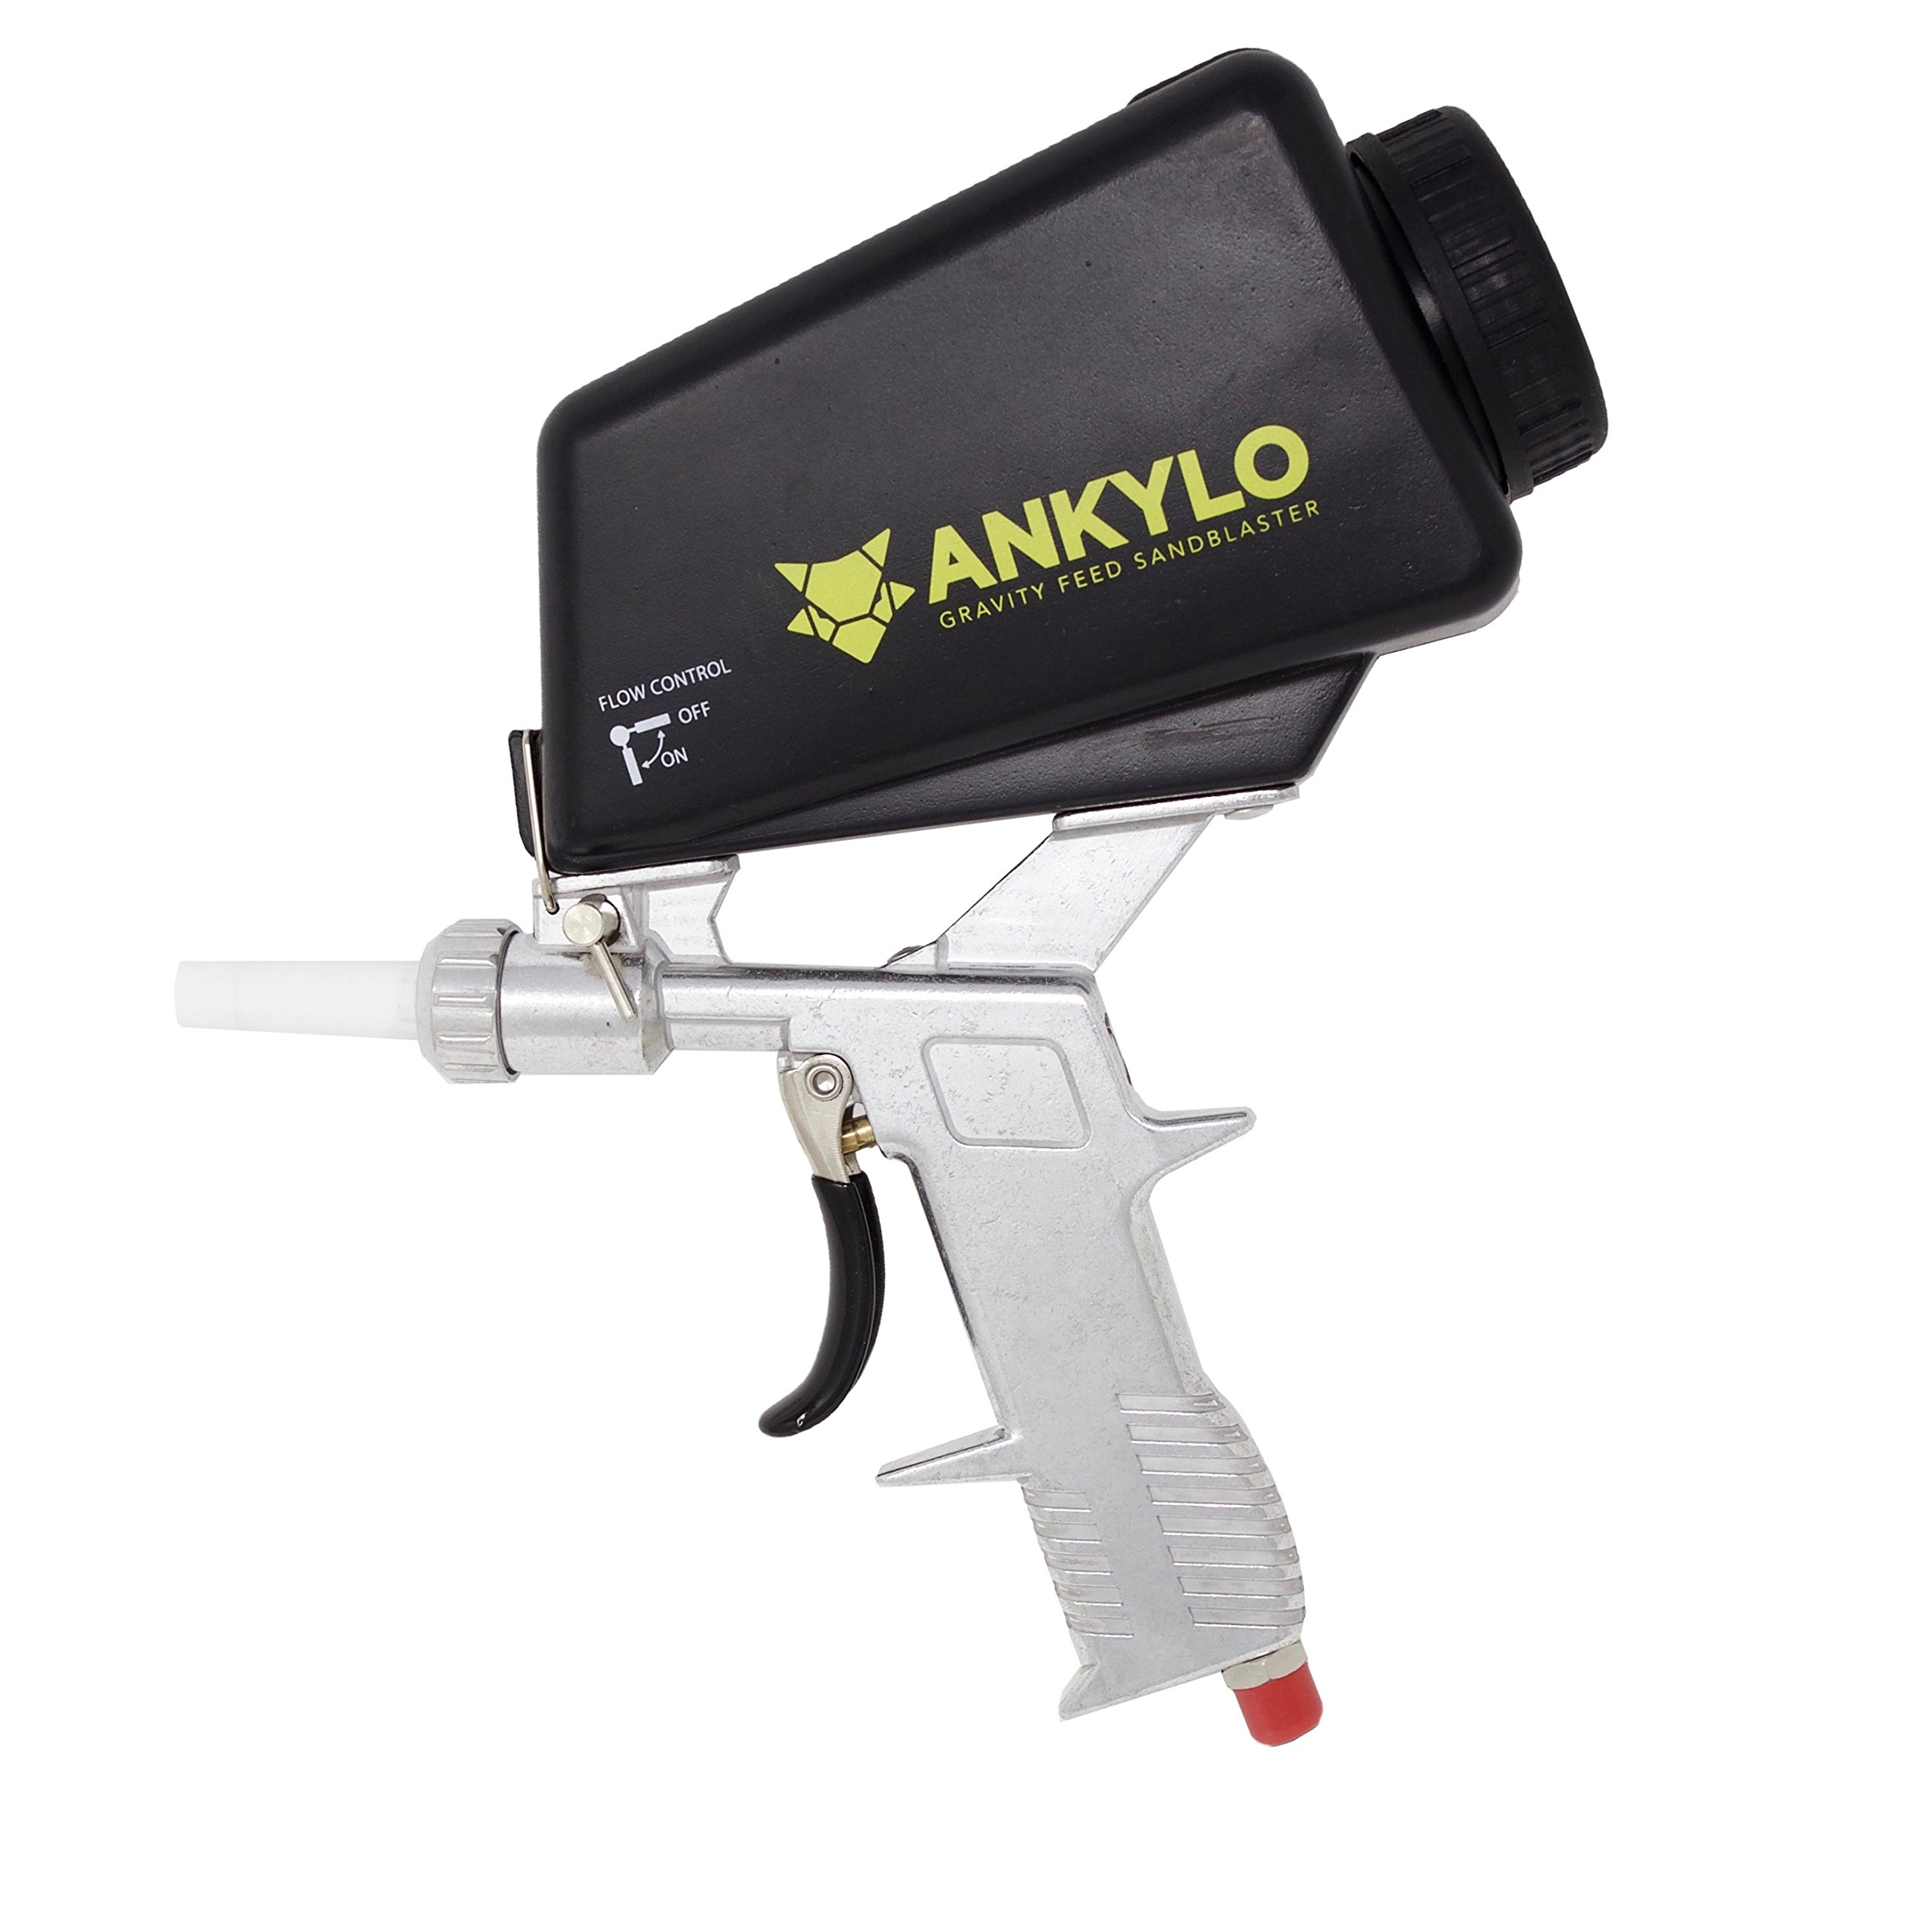 Gravity Sandblaster Gun - Durable Metal - Handheld and Portable with bonus Spot Blasting Kit - Remove Rust & Paint, Clean Tools & Parts, Create Art